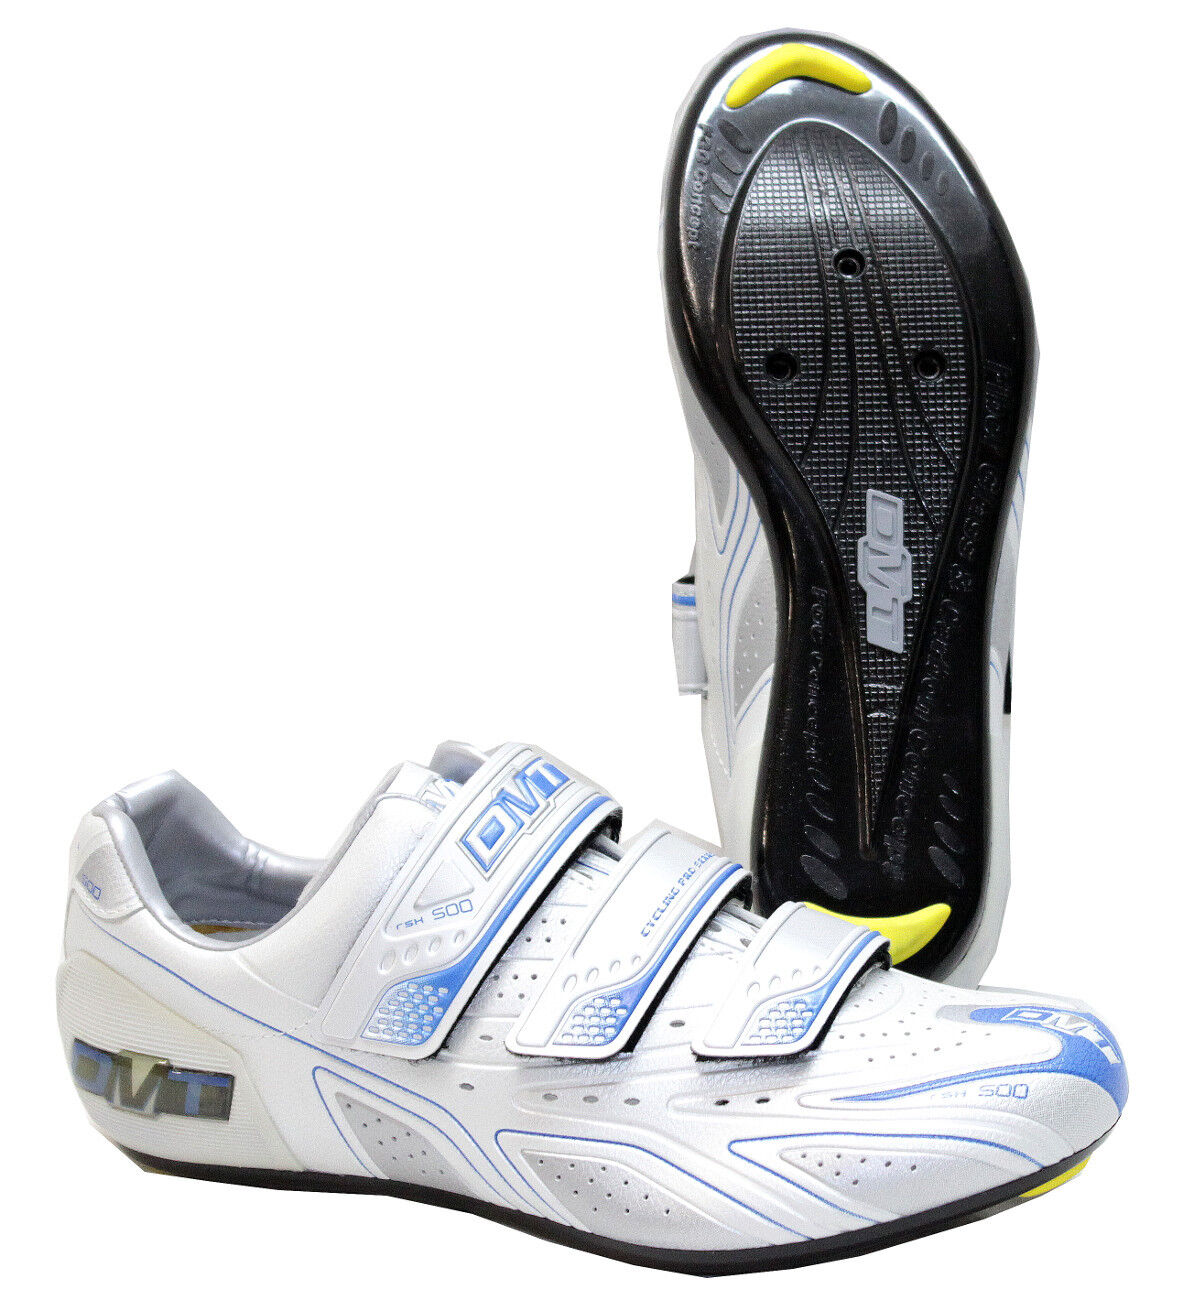 Dmt Race shoes Runner Ice Cycling shoes Road Bike Look Shimano Time Speedplay